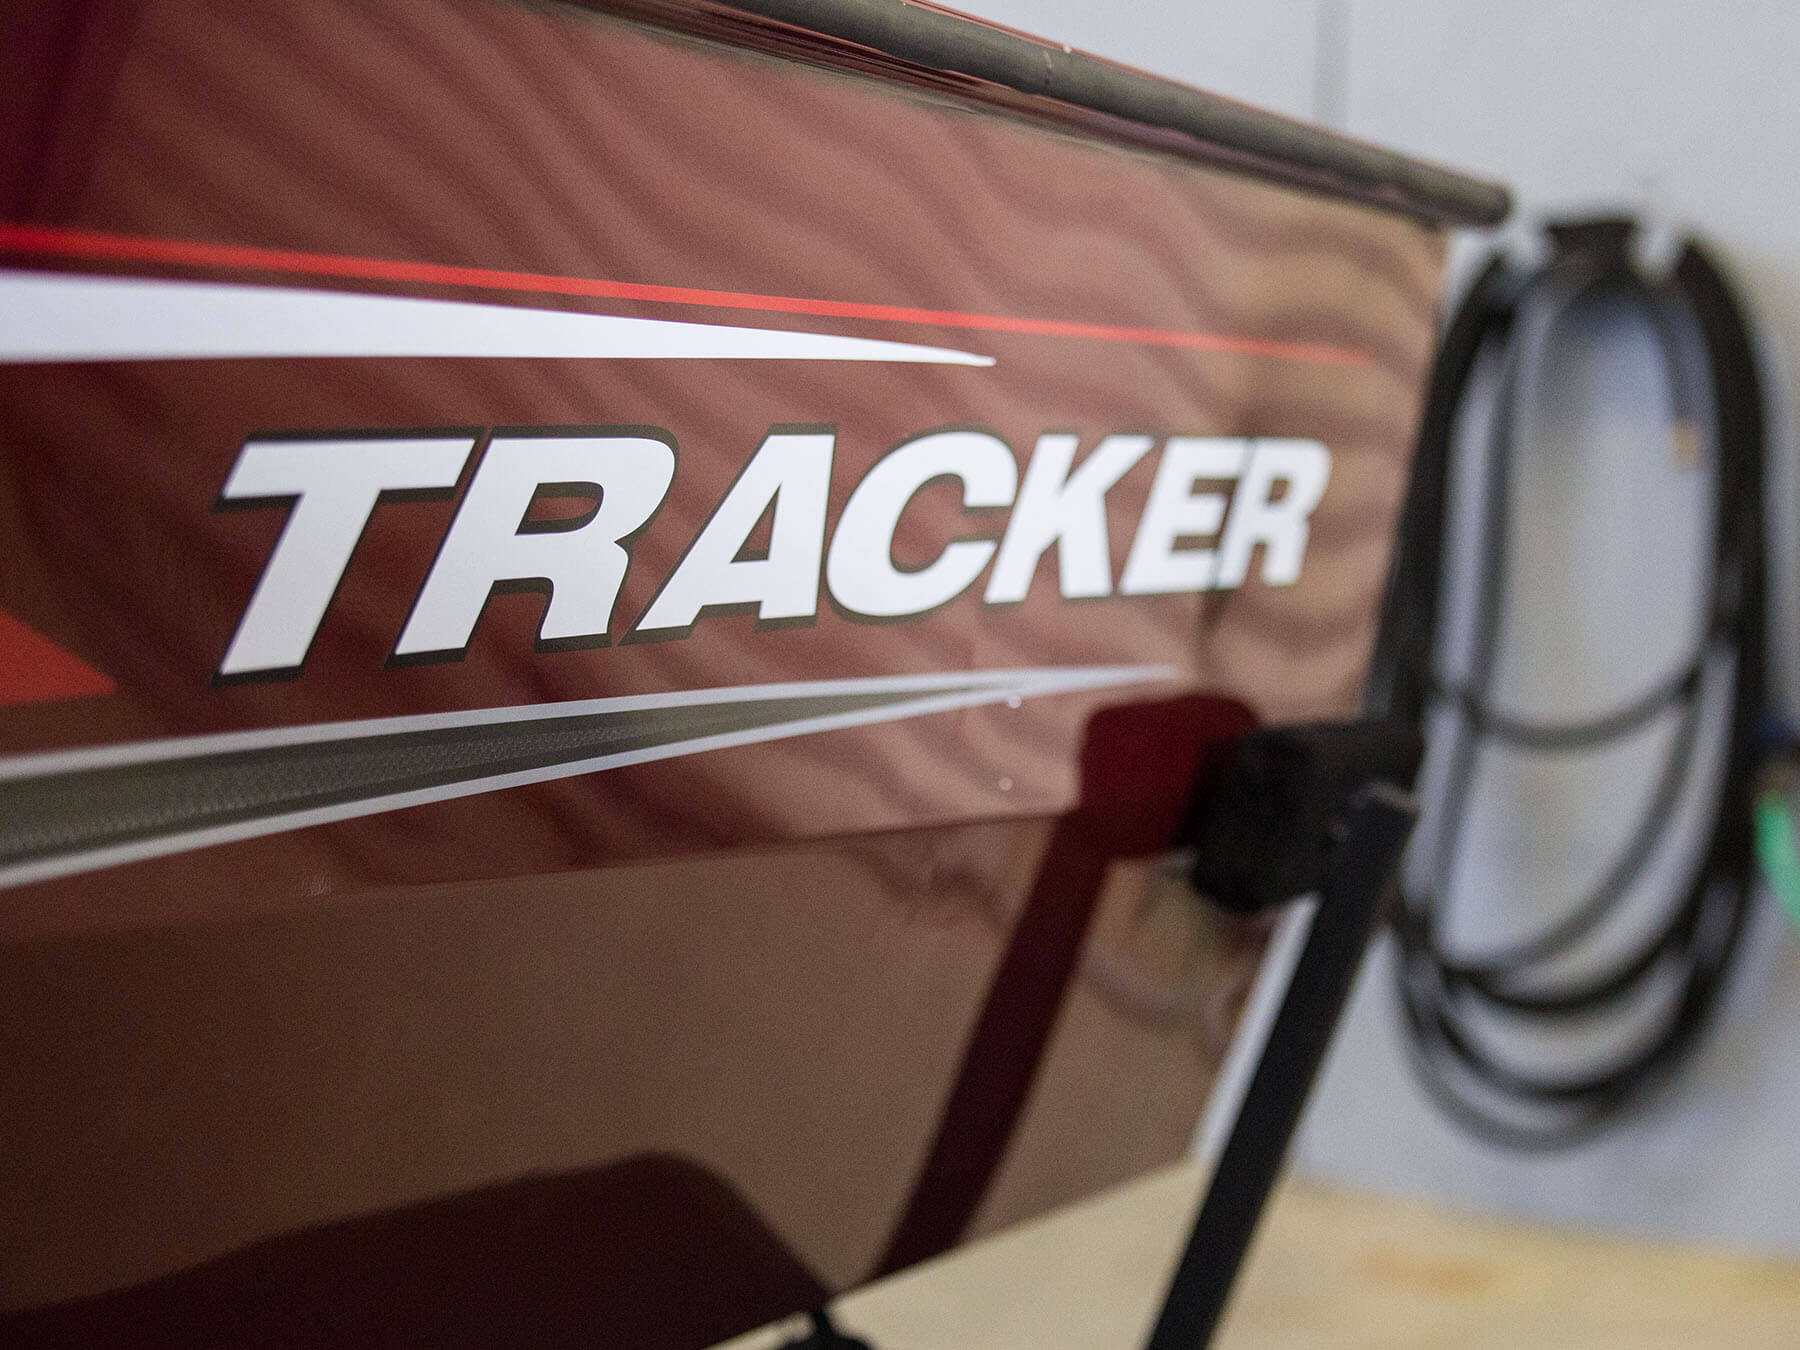 Tracker marine logo on the side of a boat